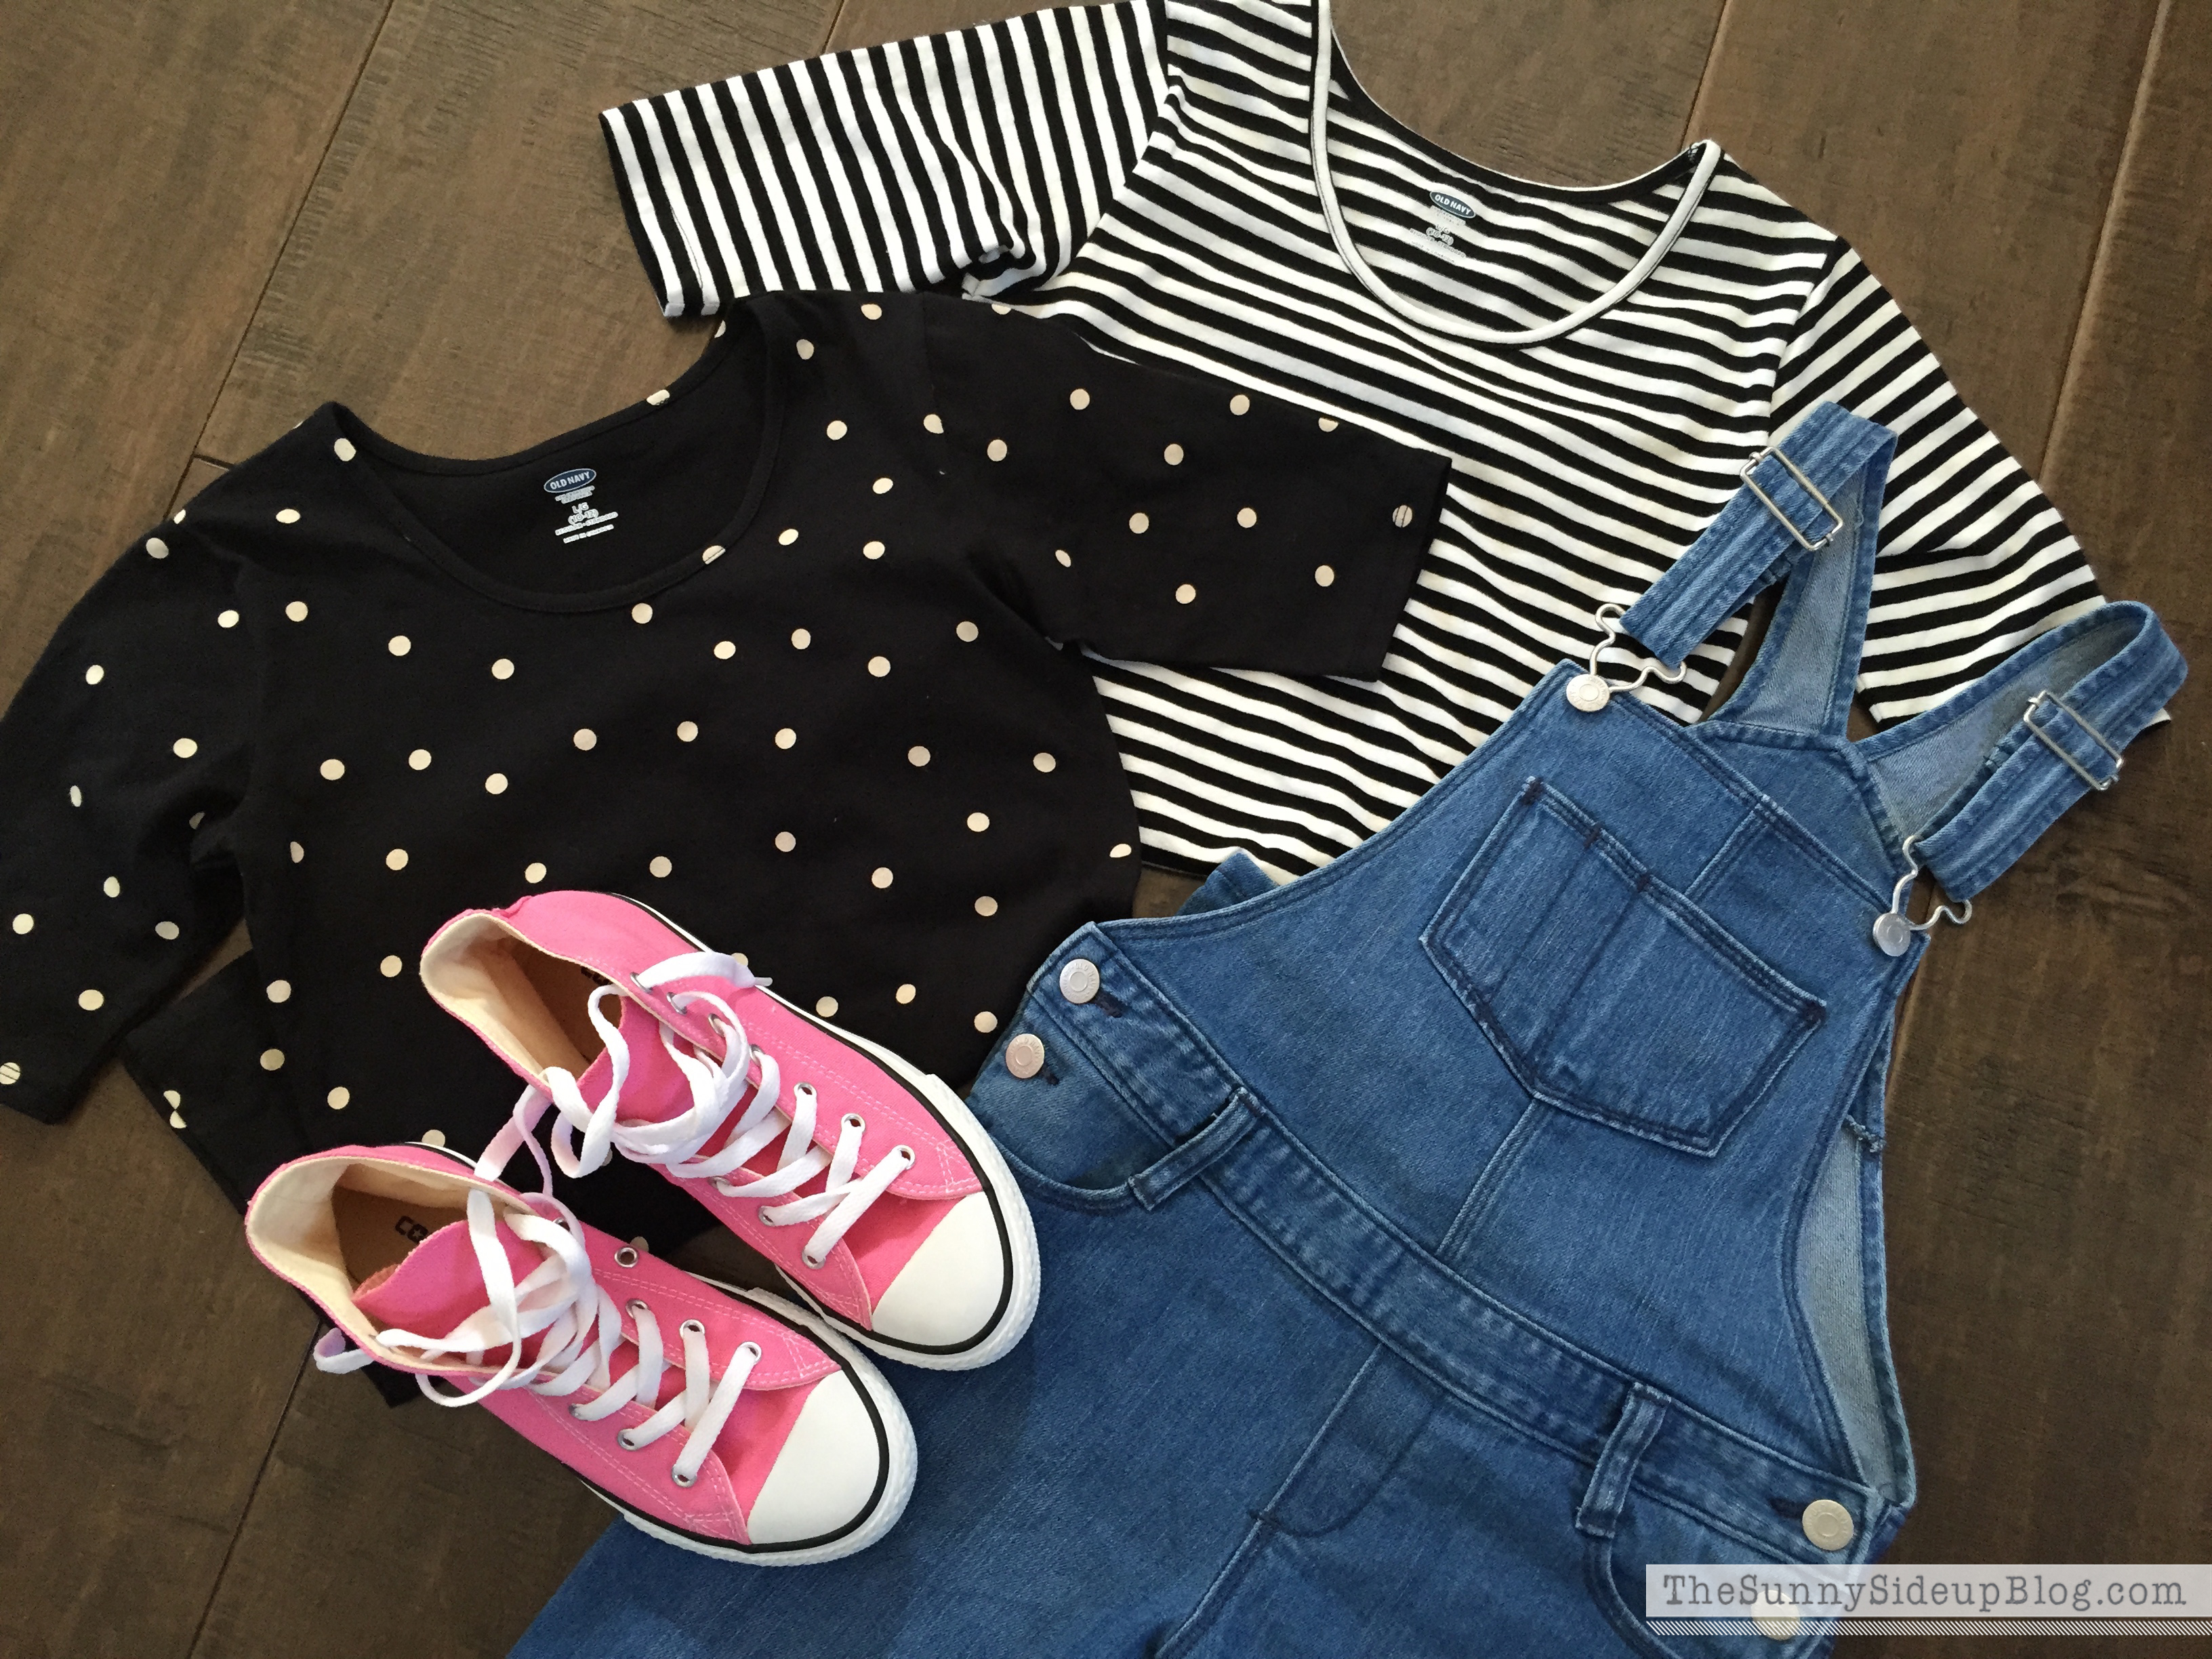 7f24d06a8a7b I fell hard for Old Navy s ballet tees for girls this year. They are more  of a fitted top with a bit longer sleeves. They look so cute on both of my  ...